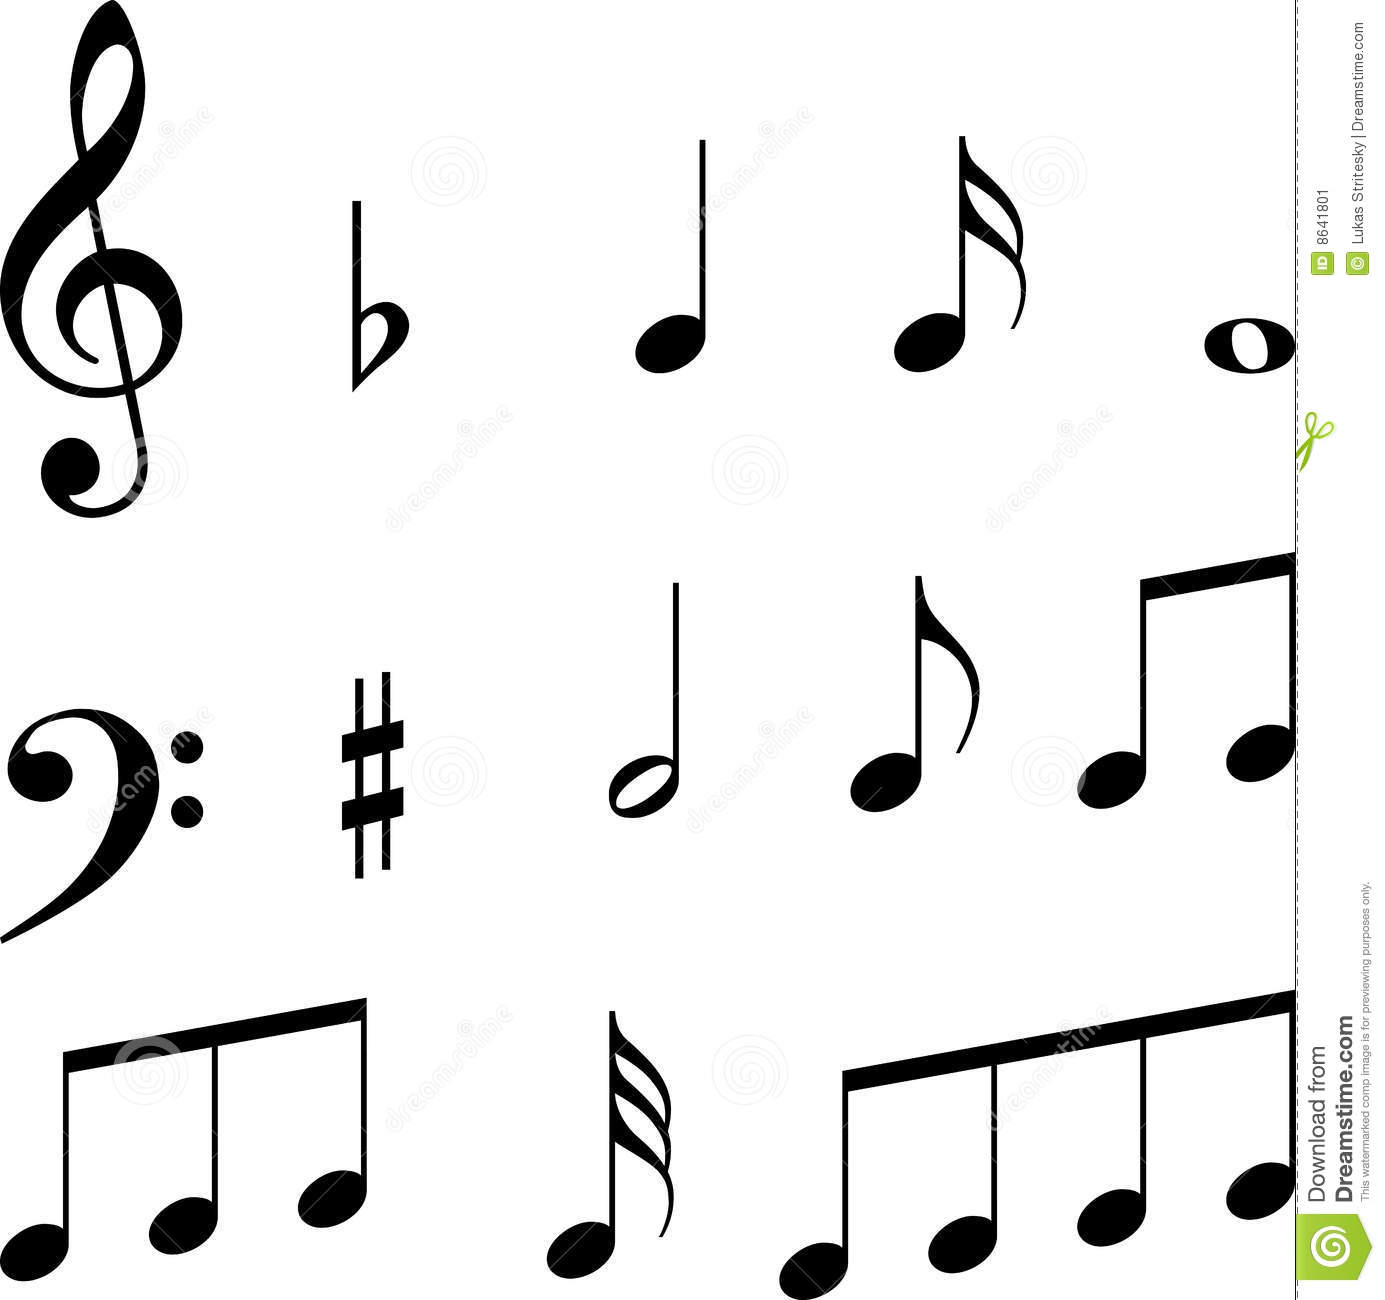 Music notes symbols clipart panda free clipart images clipart info biocorpaavc Image collections